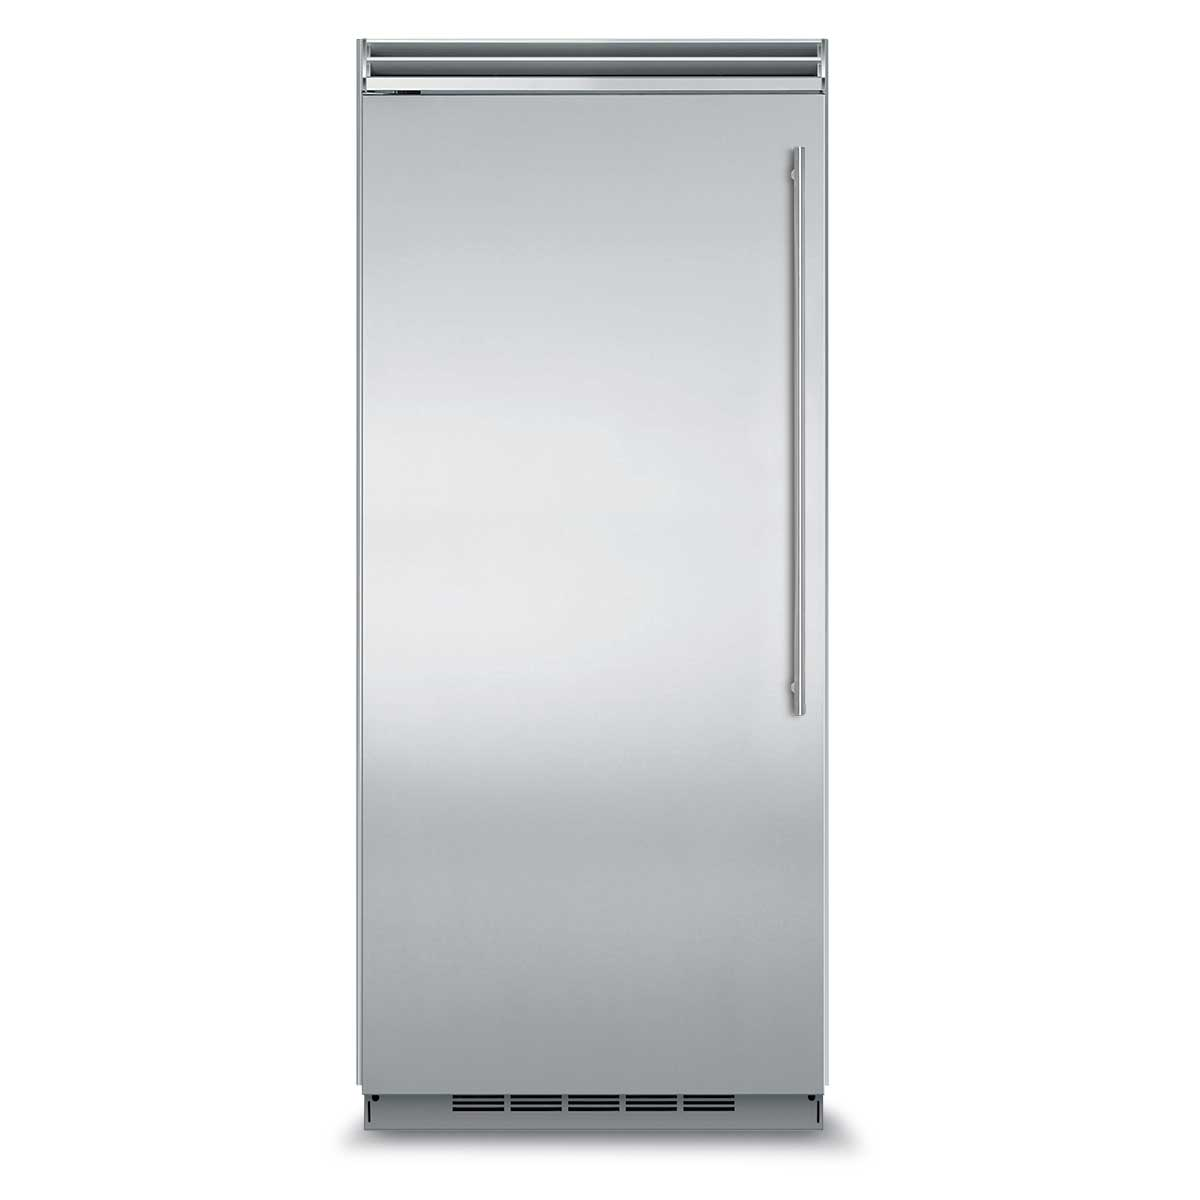 "Marvel  Marvel Professional Built-In 36"" All Freezer- Solid Stainless Steel Door   Right Hinge, Slim Designer Handle"